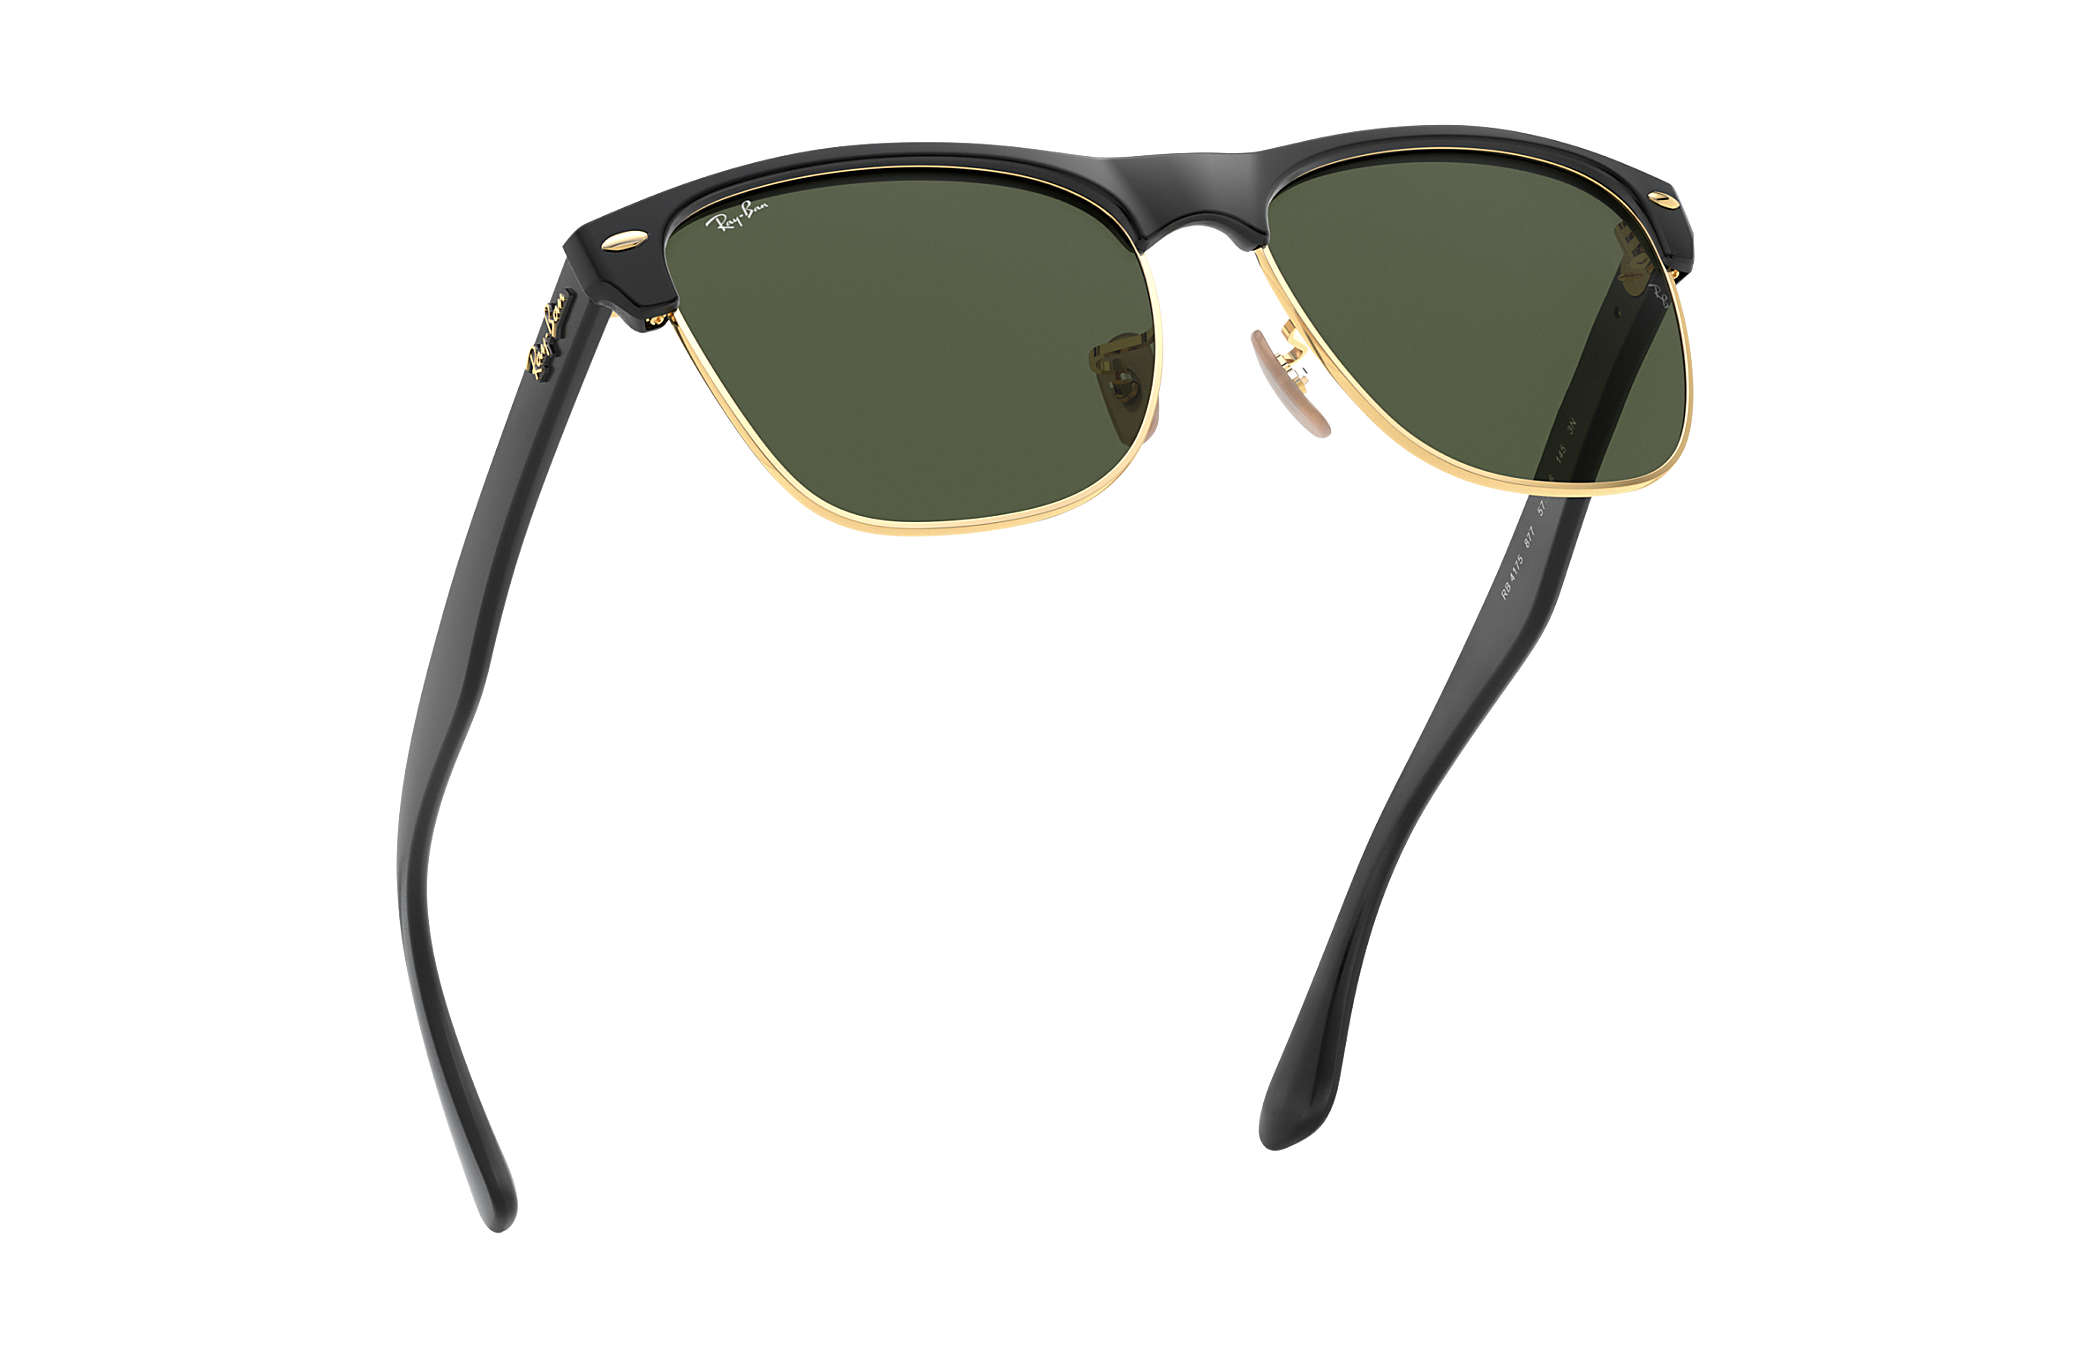 f4c326df242 Ray-Ban Clubmaster Oversized RB4175 Black - Nylon - Green Lenses ...